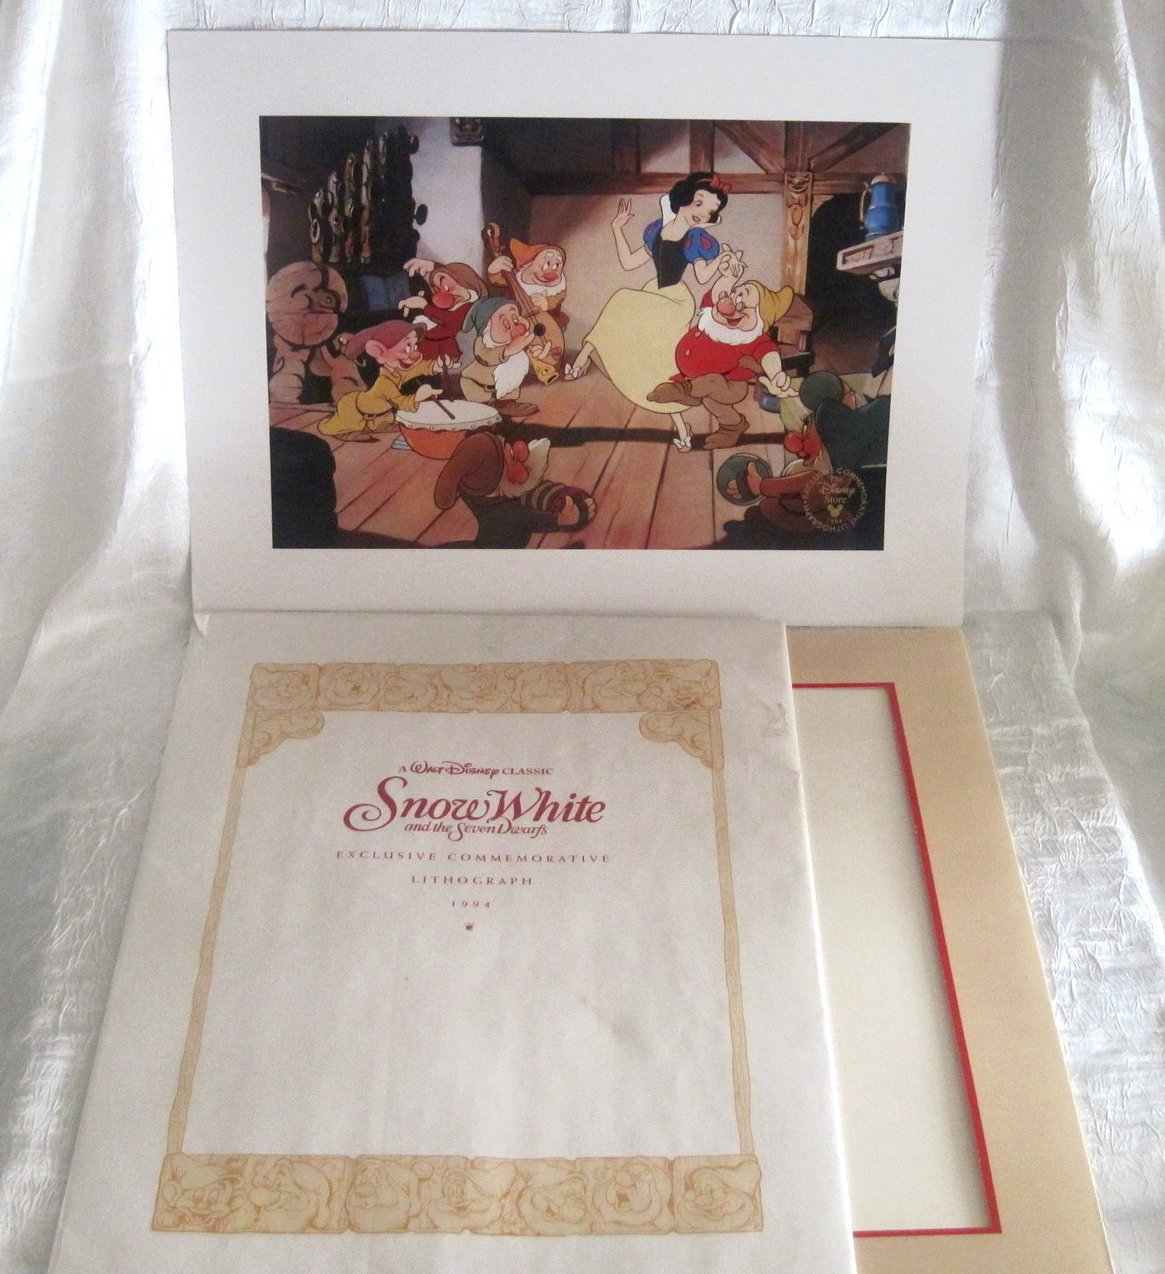 Image 4 of Snow White and the Seven Dwarfs Disney Lithograph 1994